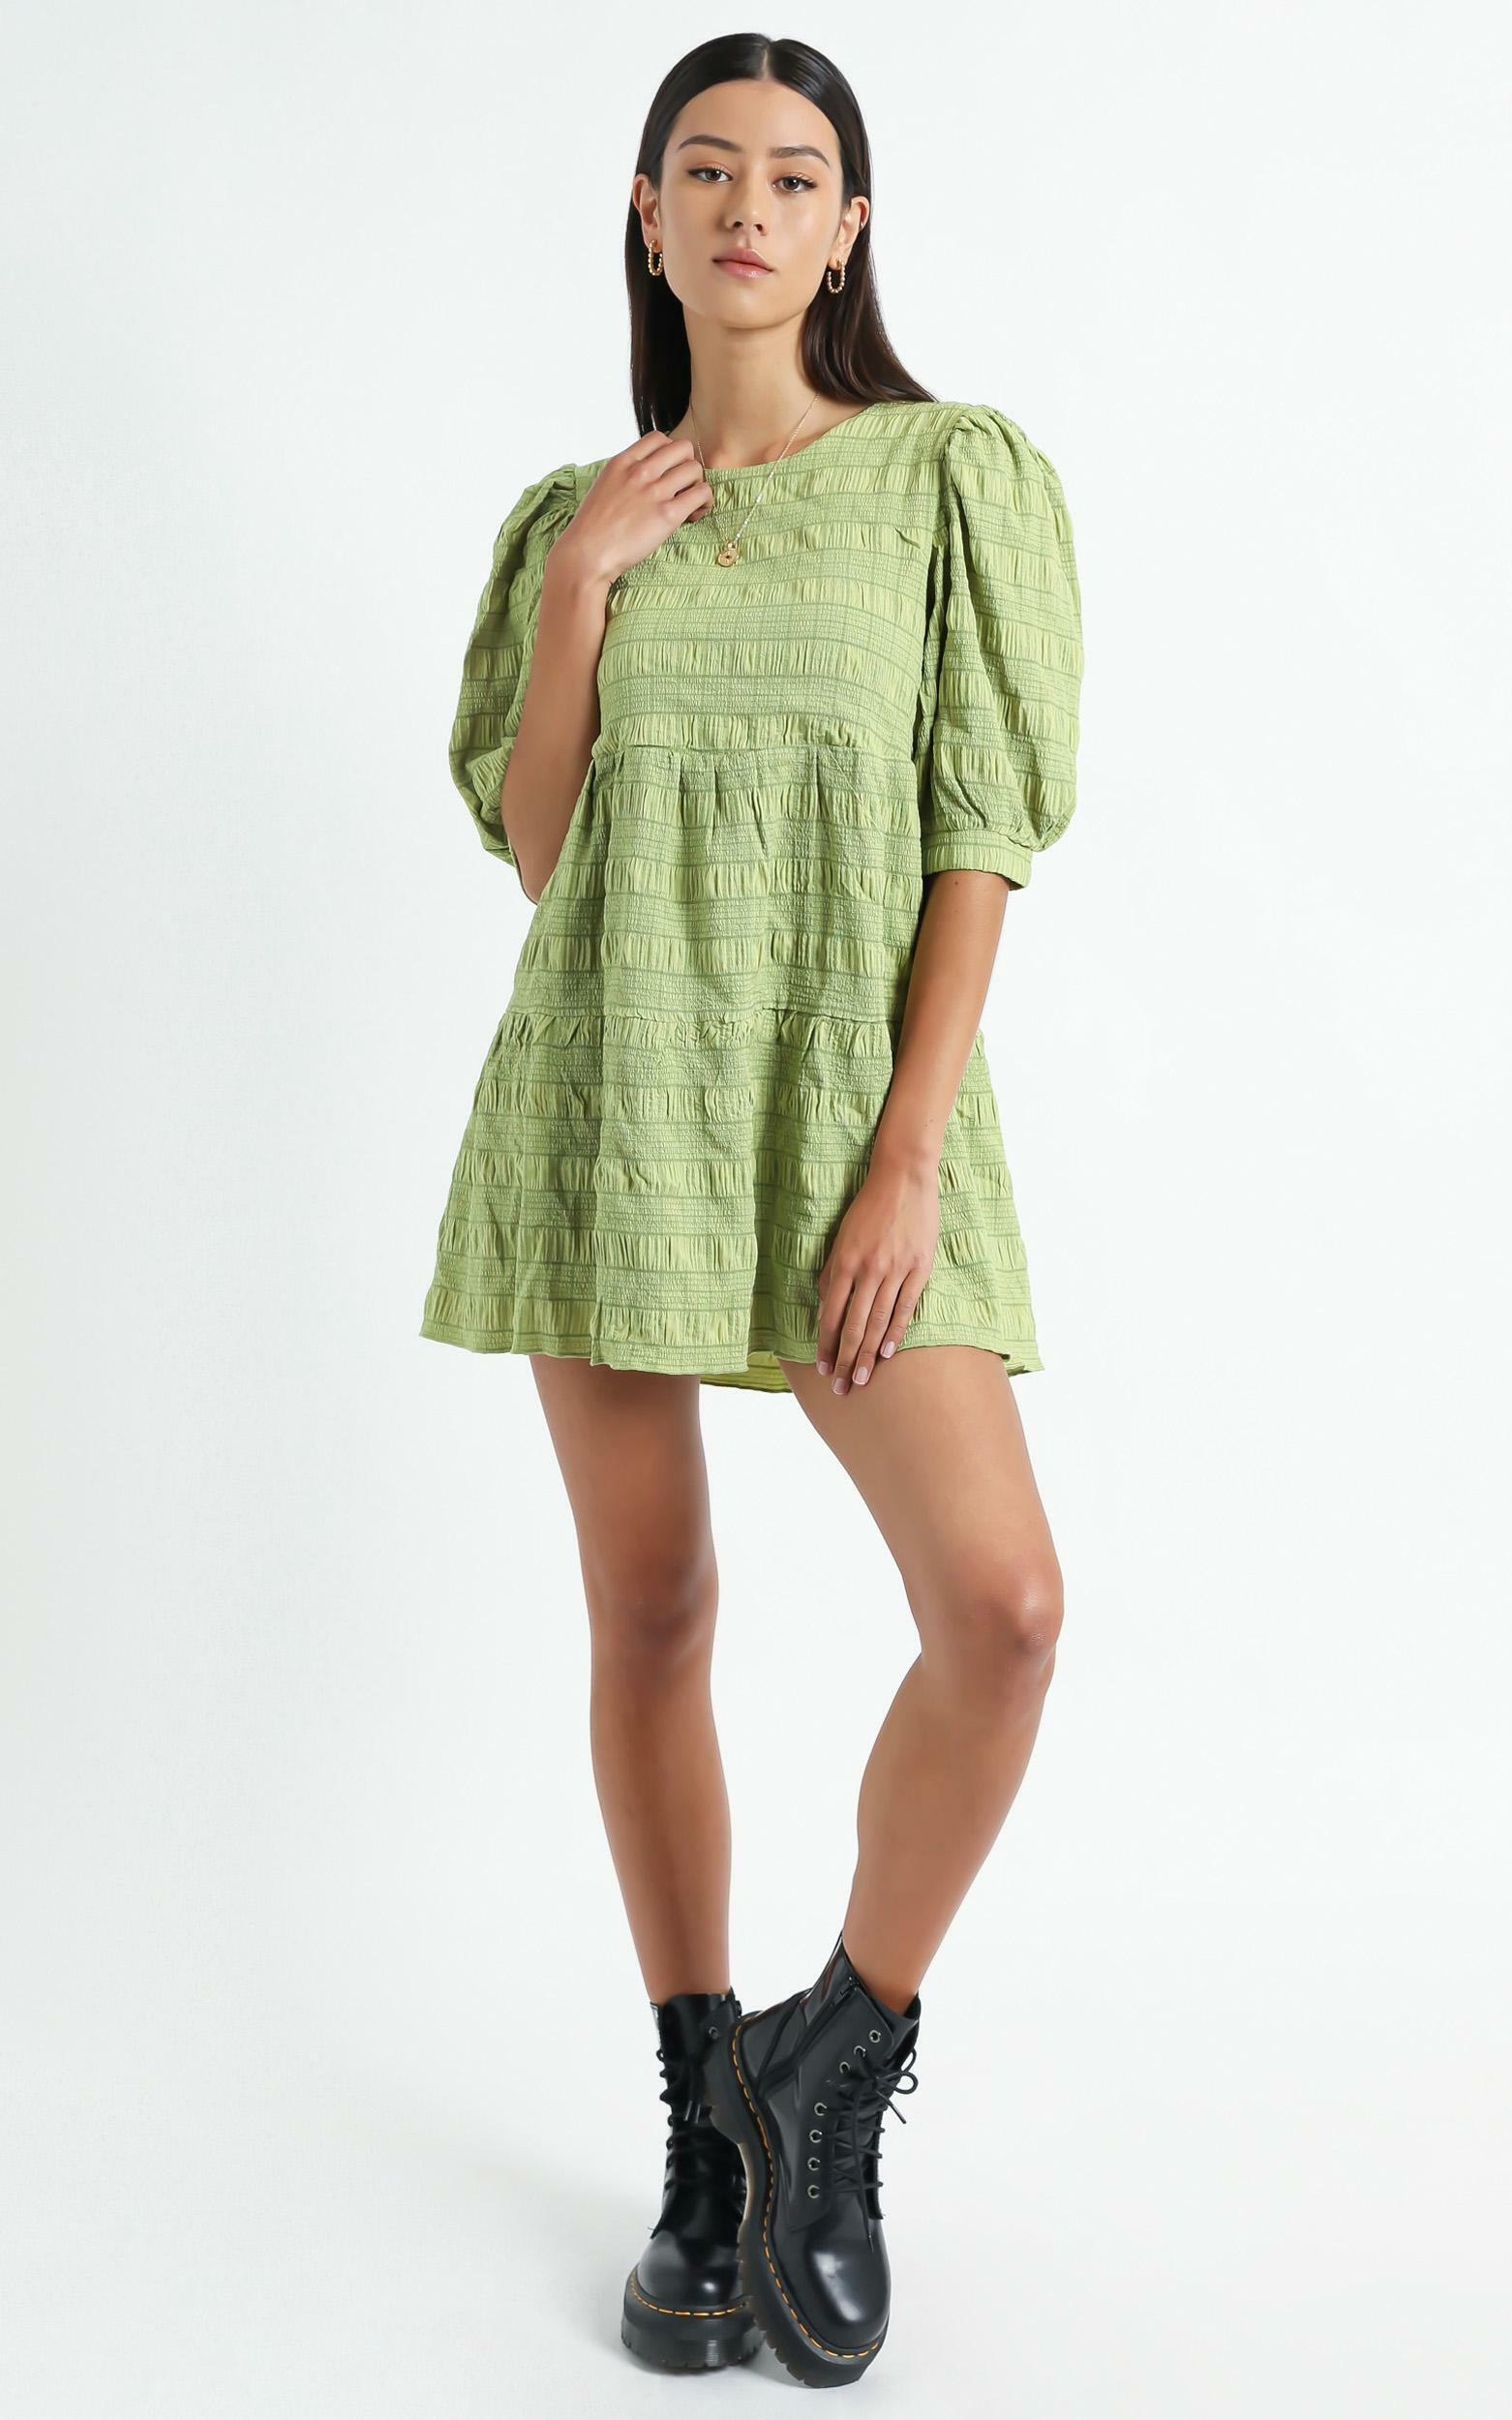 Darcia Dress in Green Check - 06, GRN1, hi-res image number null